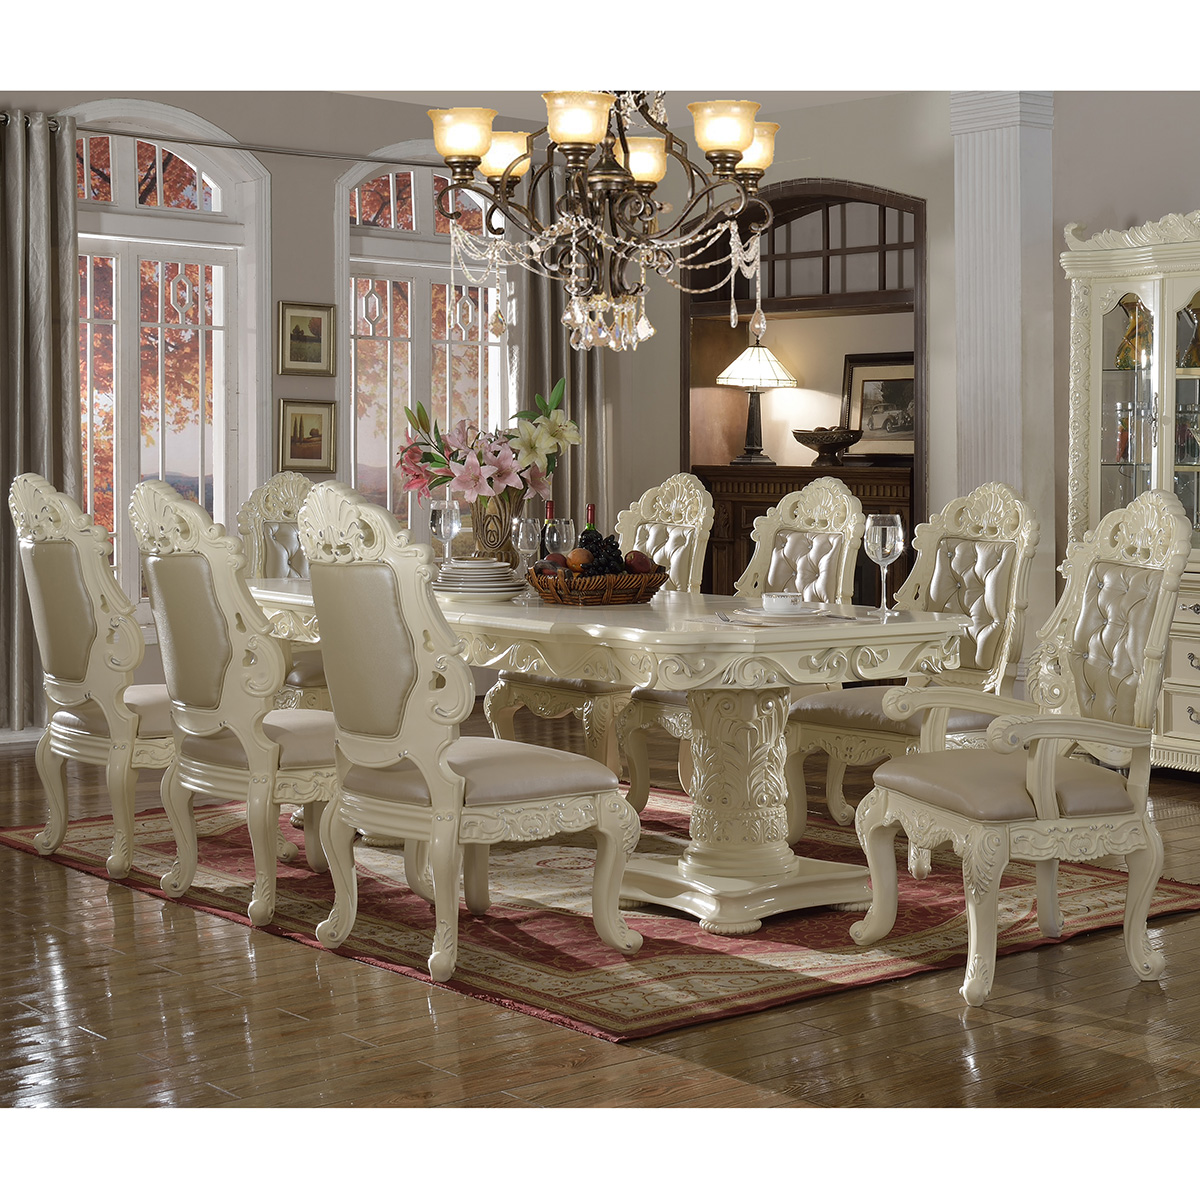 Meridian Furniture Madrid 10 Piece Dining Set In Pearl White W/ Ornate  Carving U0026 Crystal Tufted Leather